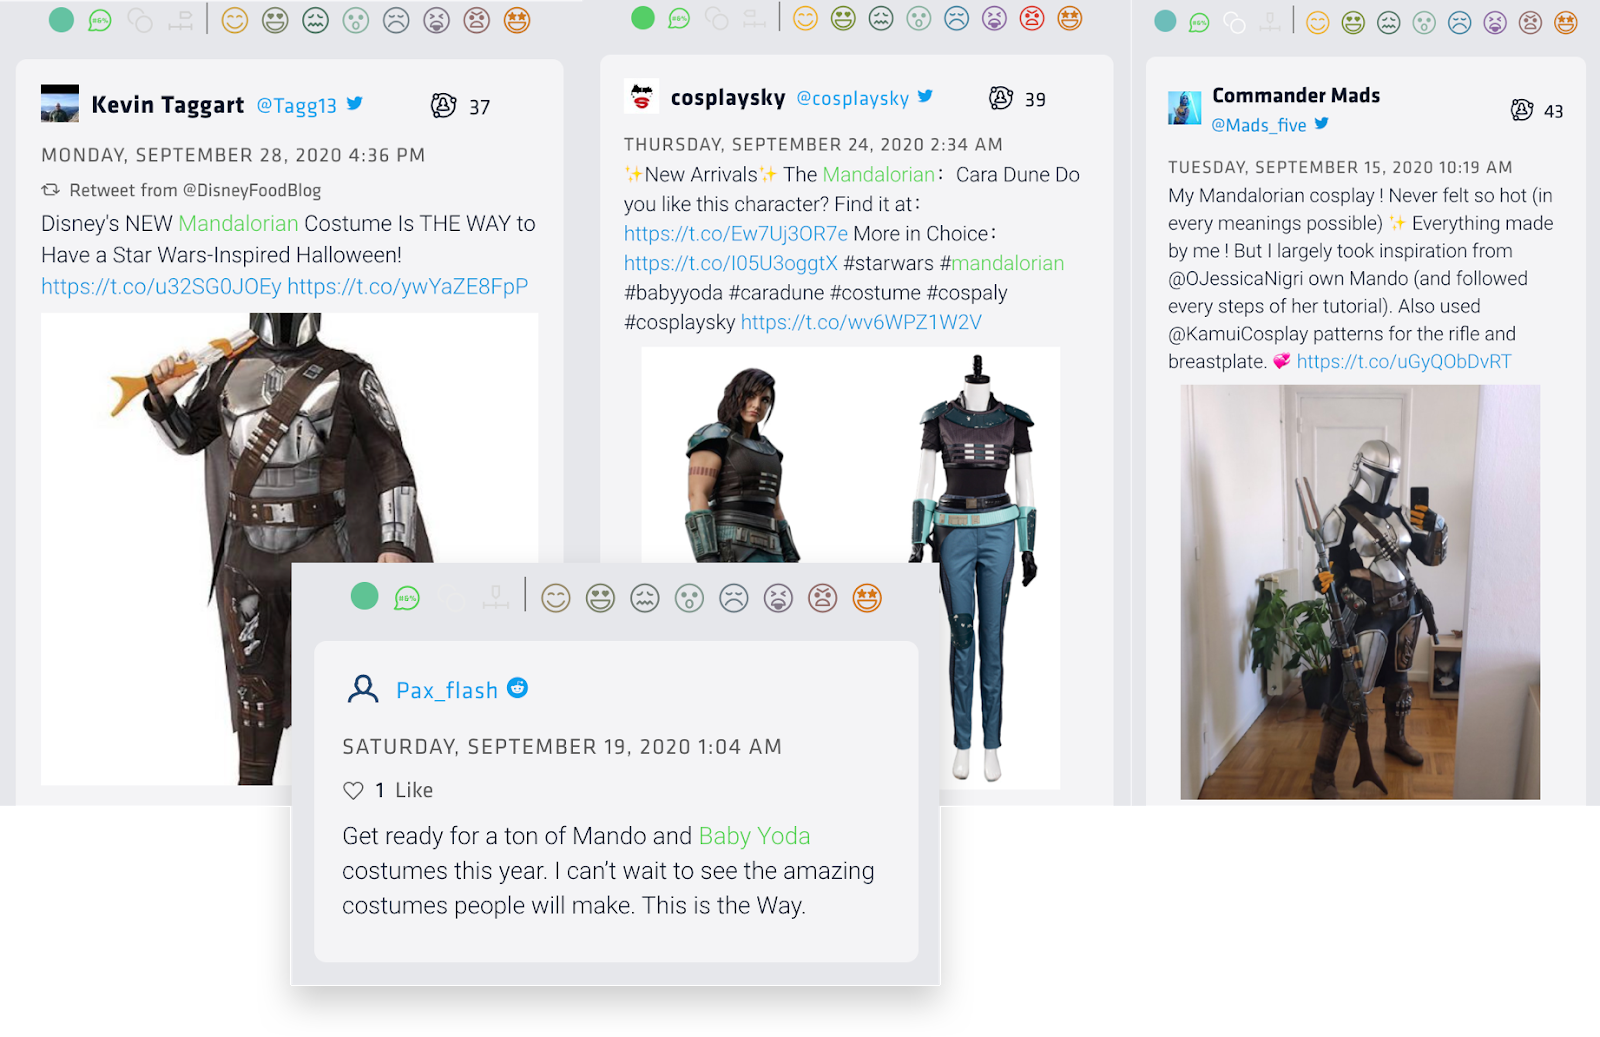 "These costume tweets were found via Nuvi's social listening platform. The first two show Disney's costumes for Mando, the main character of the Mandalorian, for Cara Dune, Gina Carano's character. The third is an image of a Mando costume a cosplay made that looks amazing. The last tweet reads: ""Get ready for a ton of Mando and Baby Yoda costumes this year. I can't wait to see the amazing costumes people will make. This is the way."